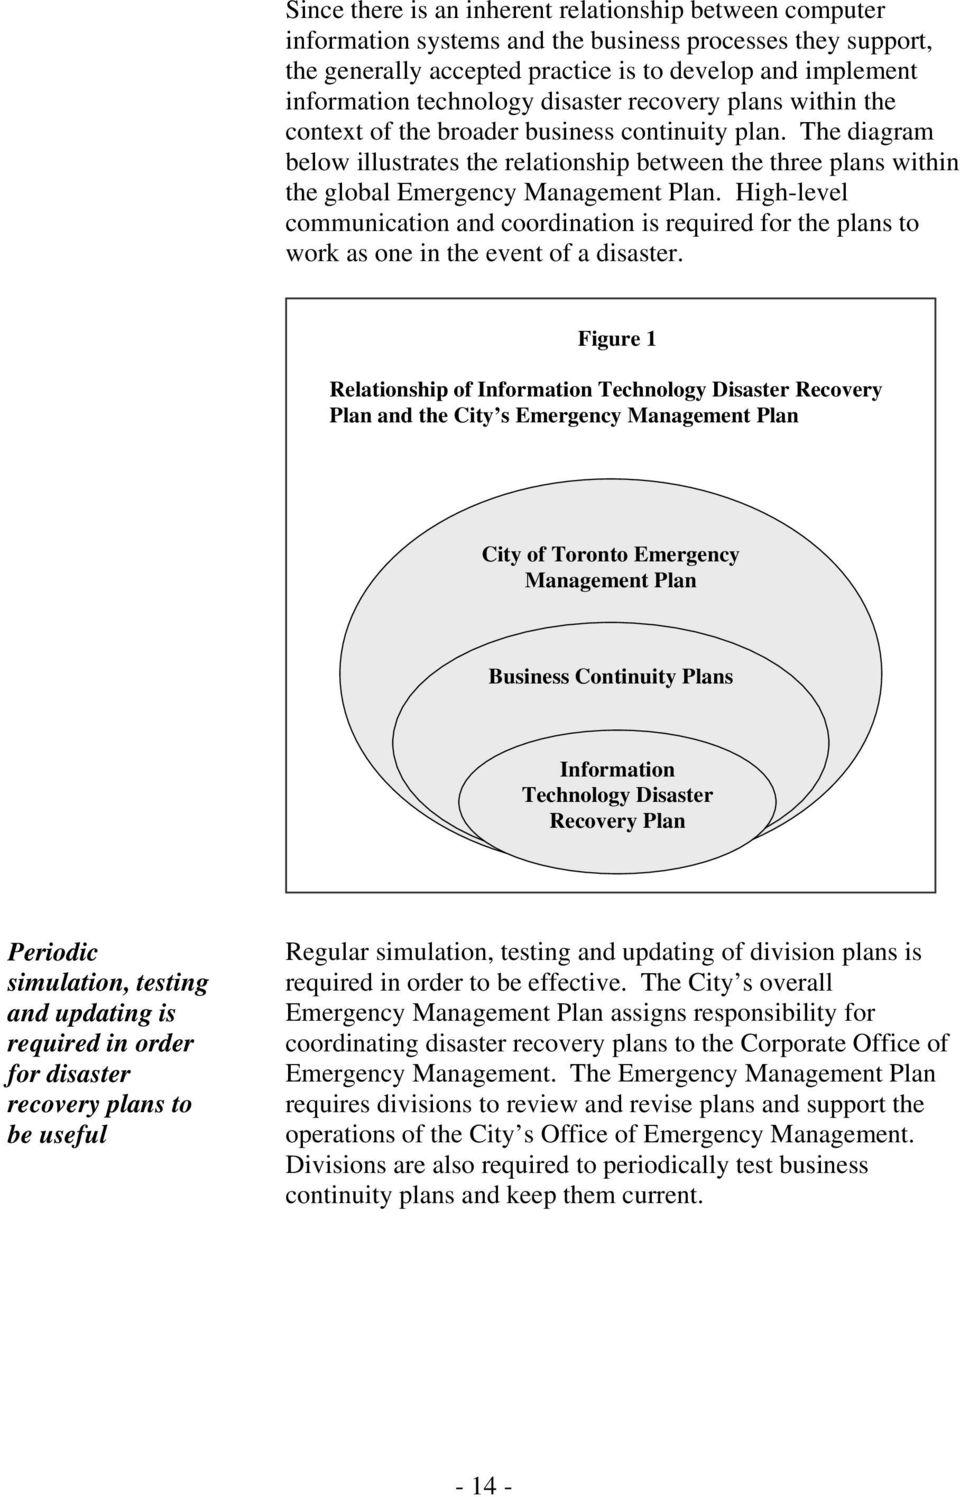 The diagram below illustrates the relationship between the three plans within the global Emergency Management Plan.